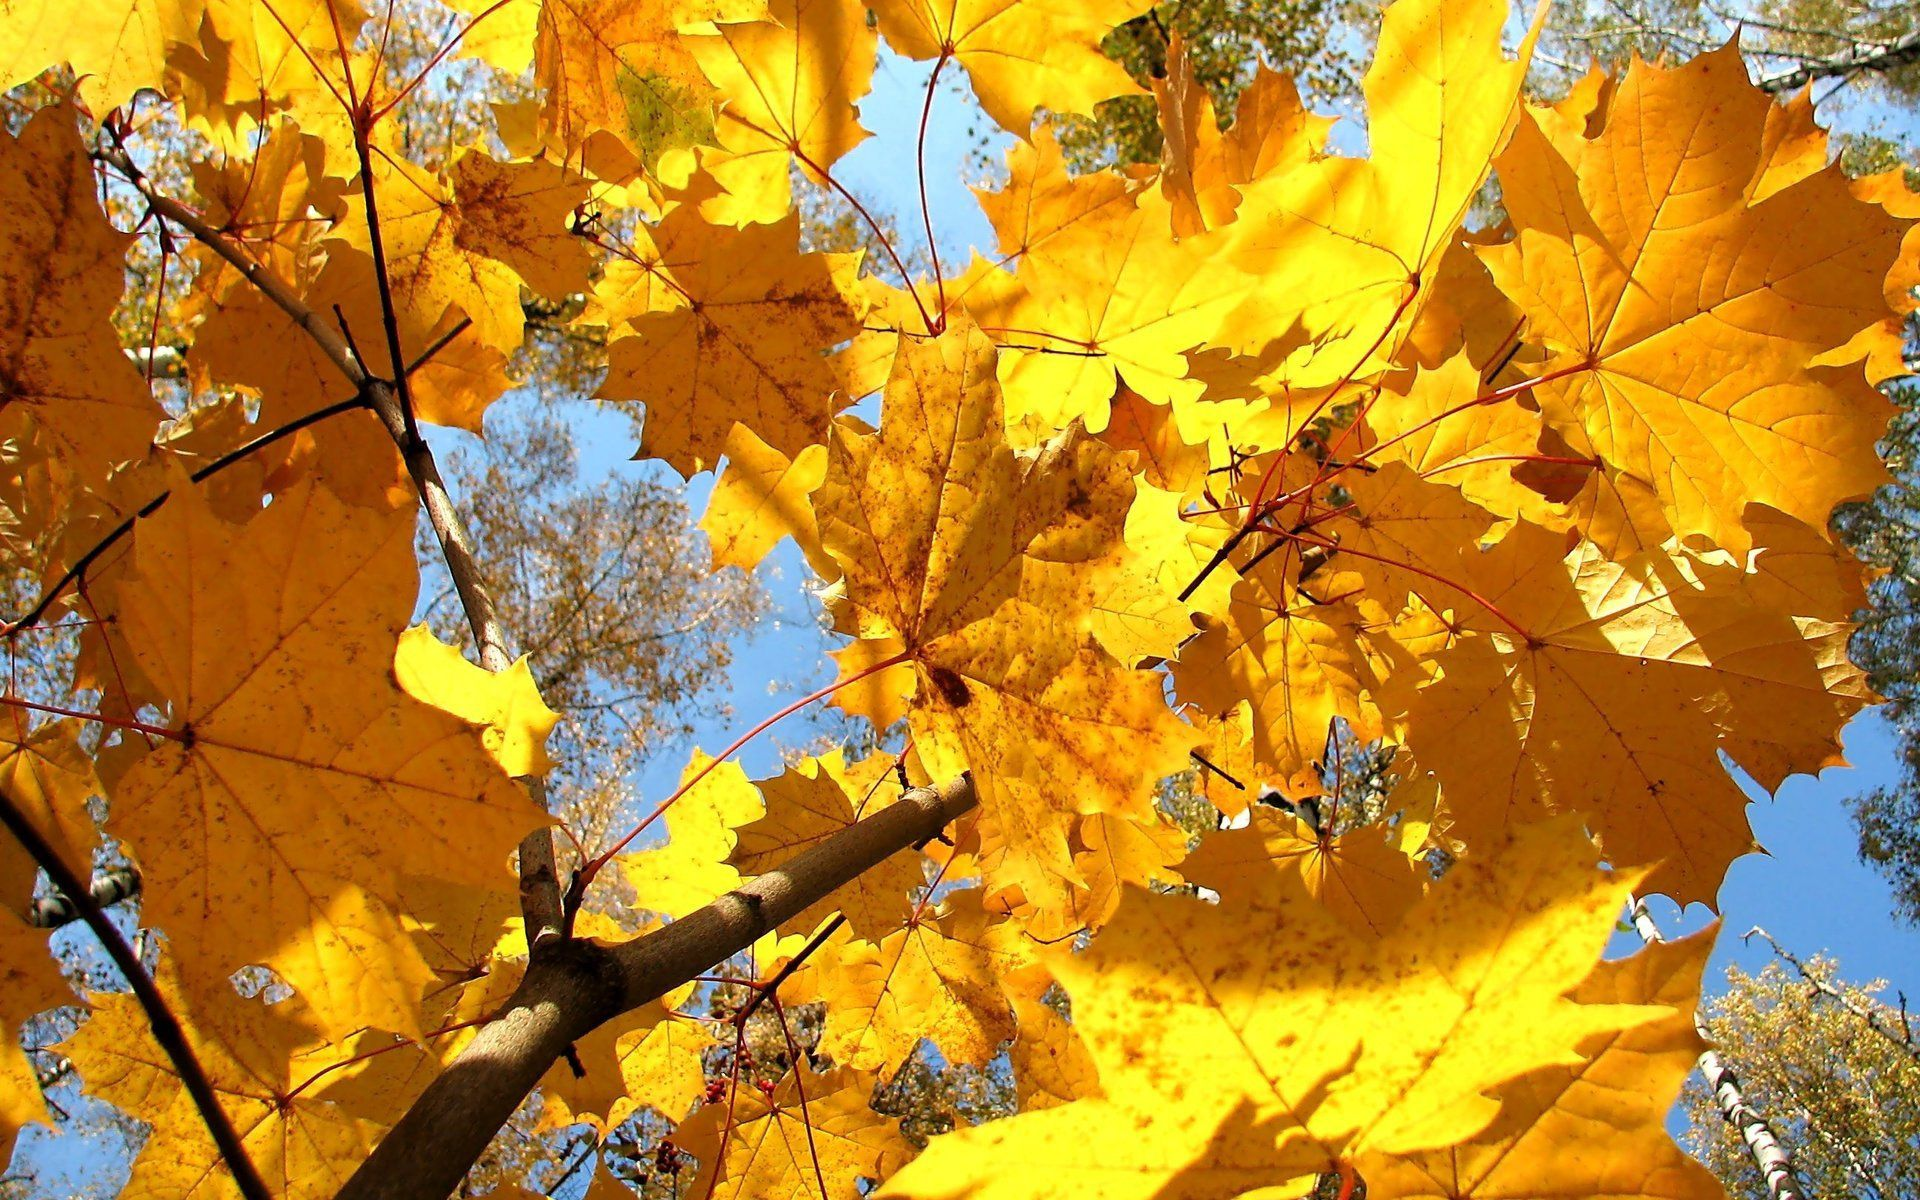 70494 download wallpaper Nature, Leaves, Maple, Dry, Branch screensavers and pictures for free